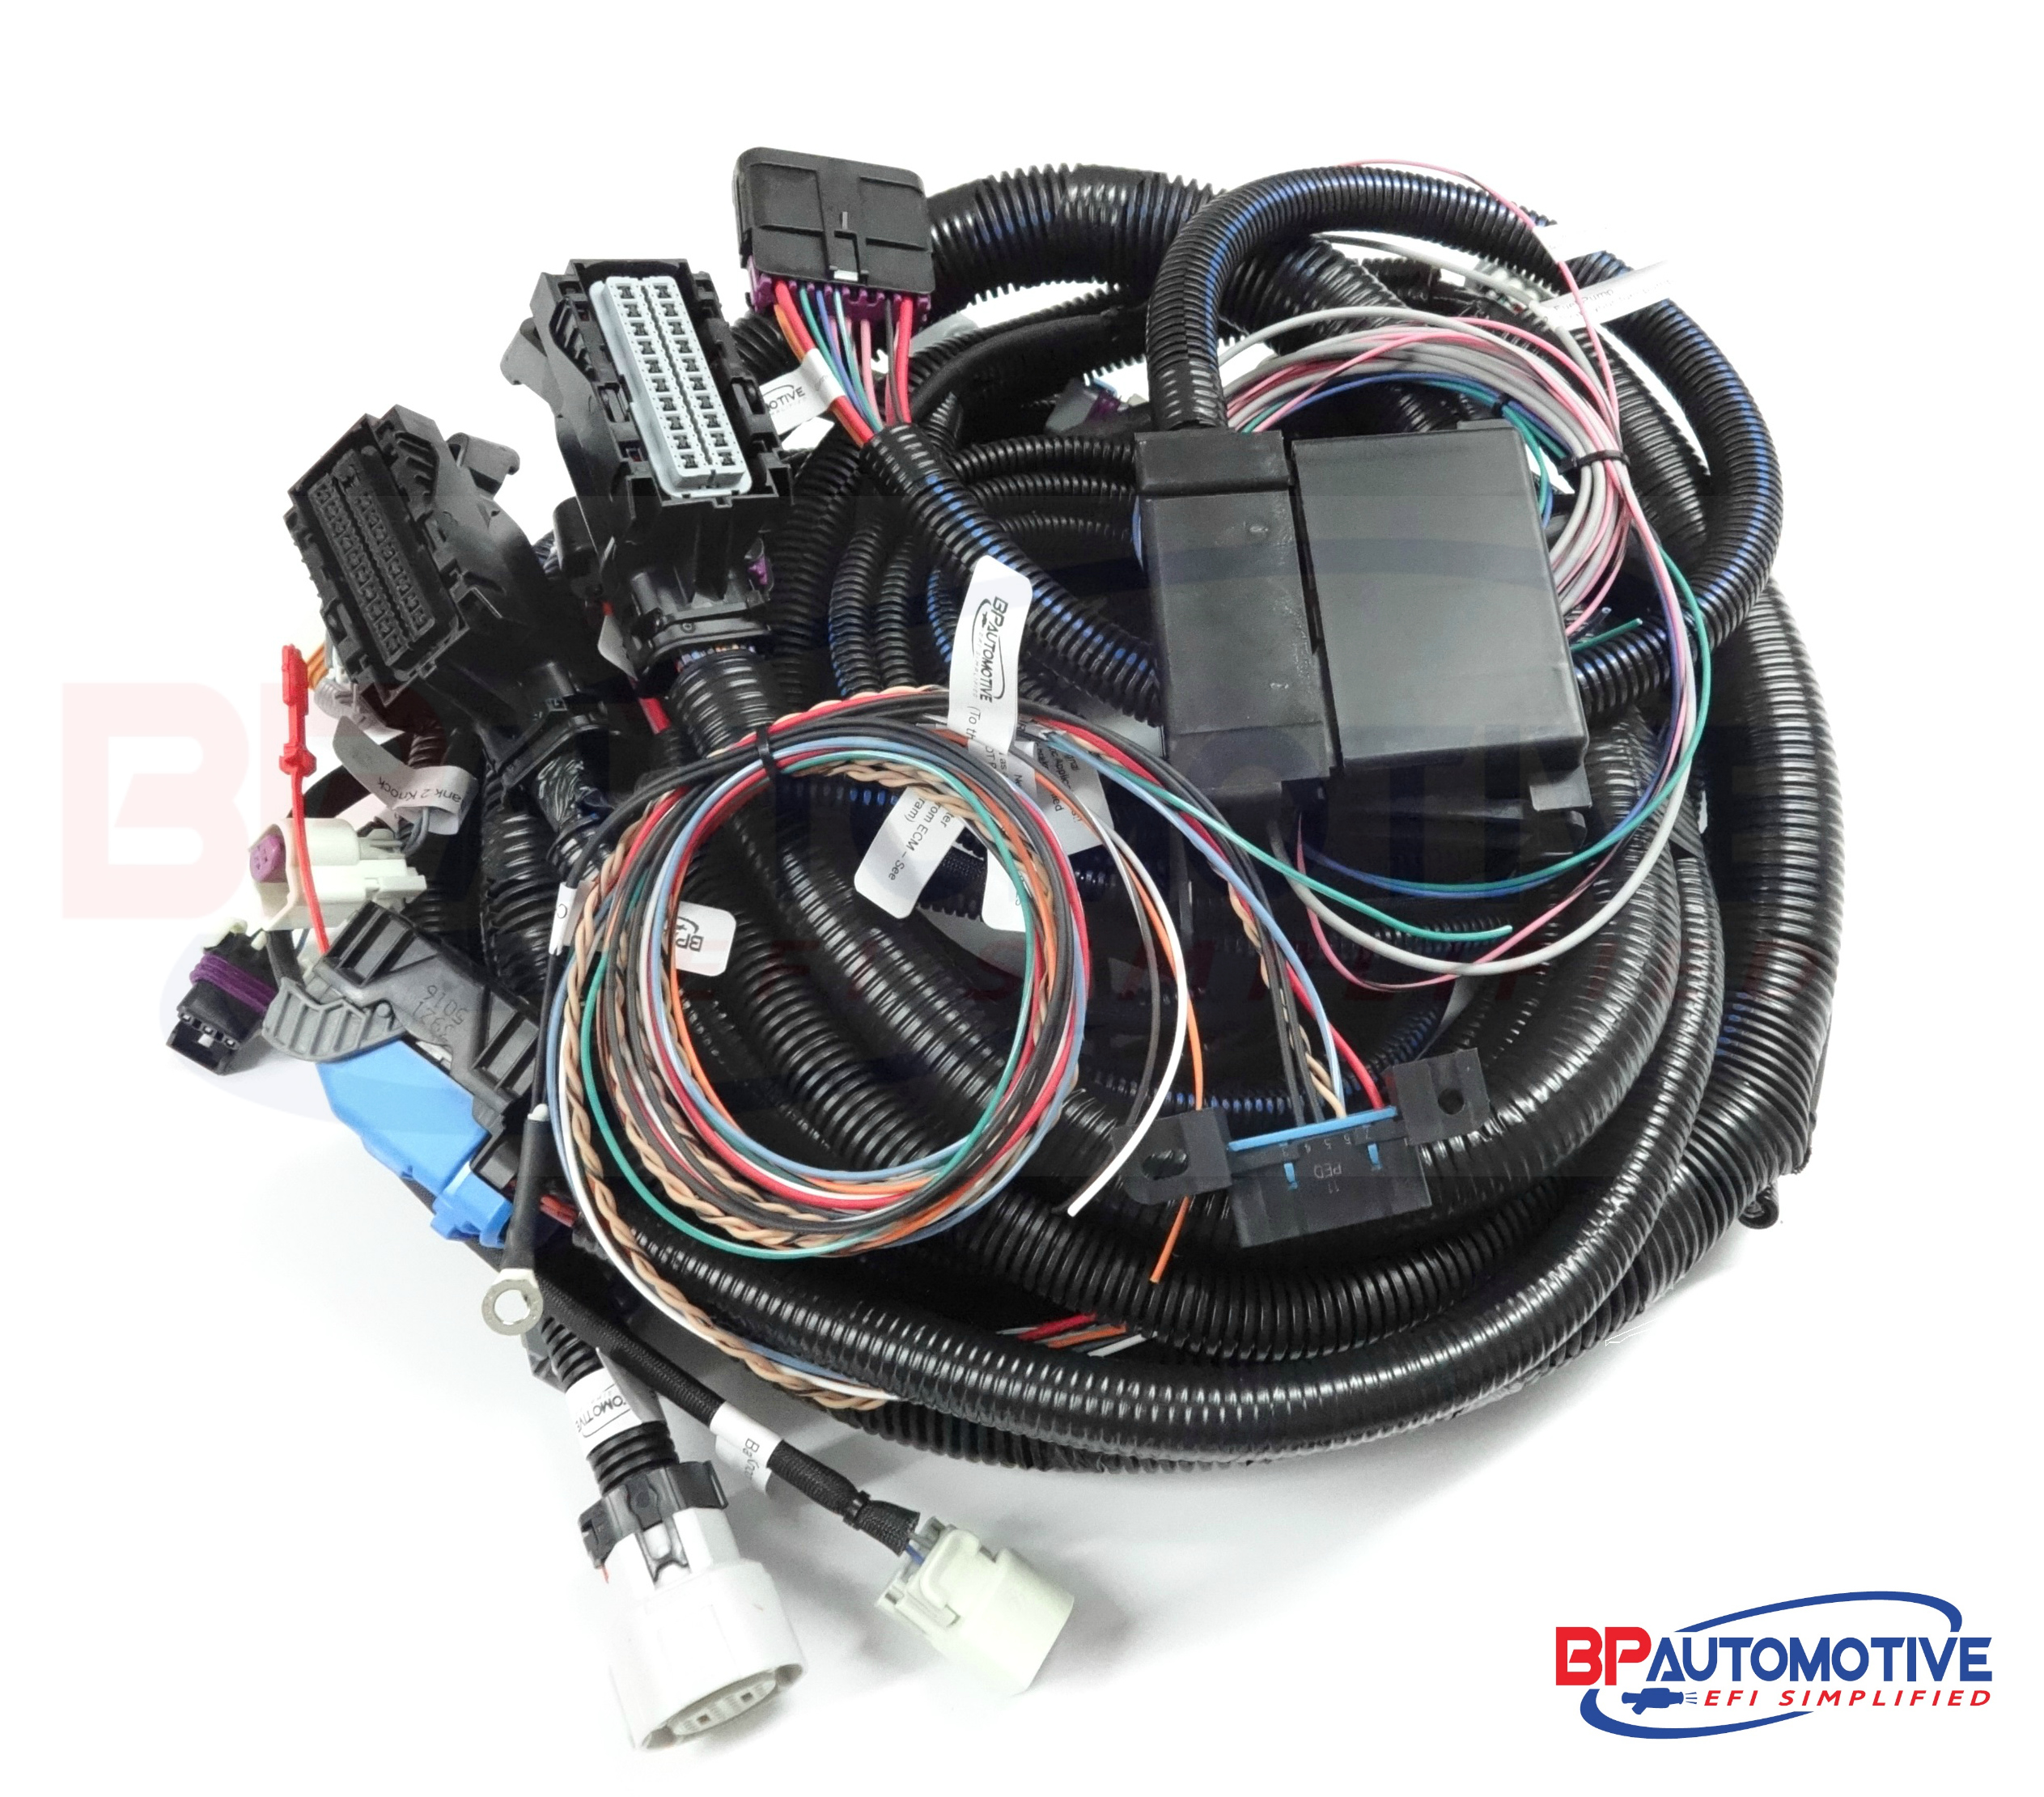 2007 Tr6060 Or Non Electric Transmission Standalone Ls Swap Harness